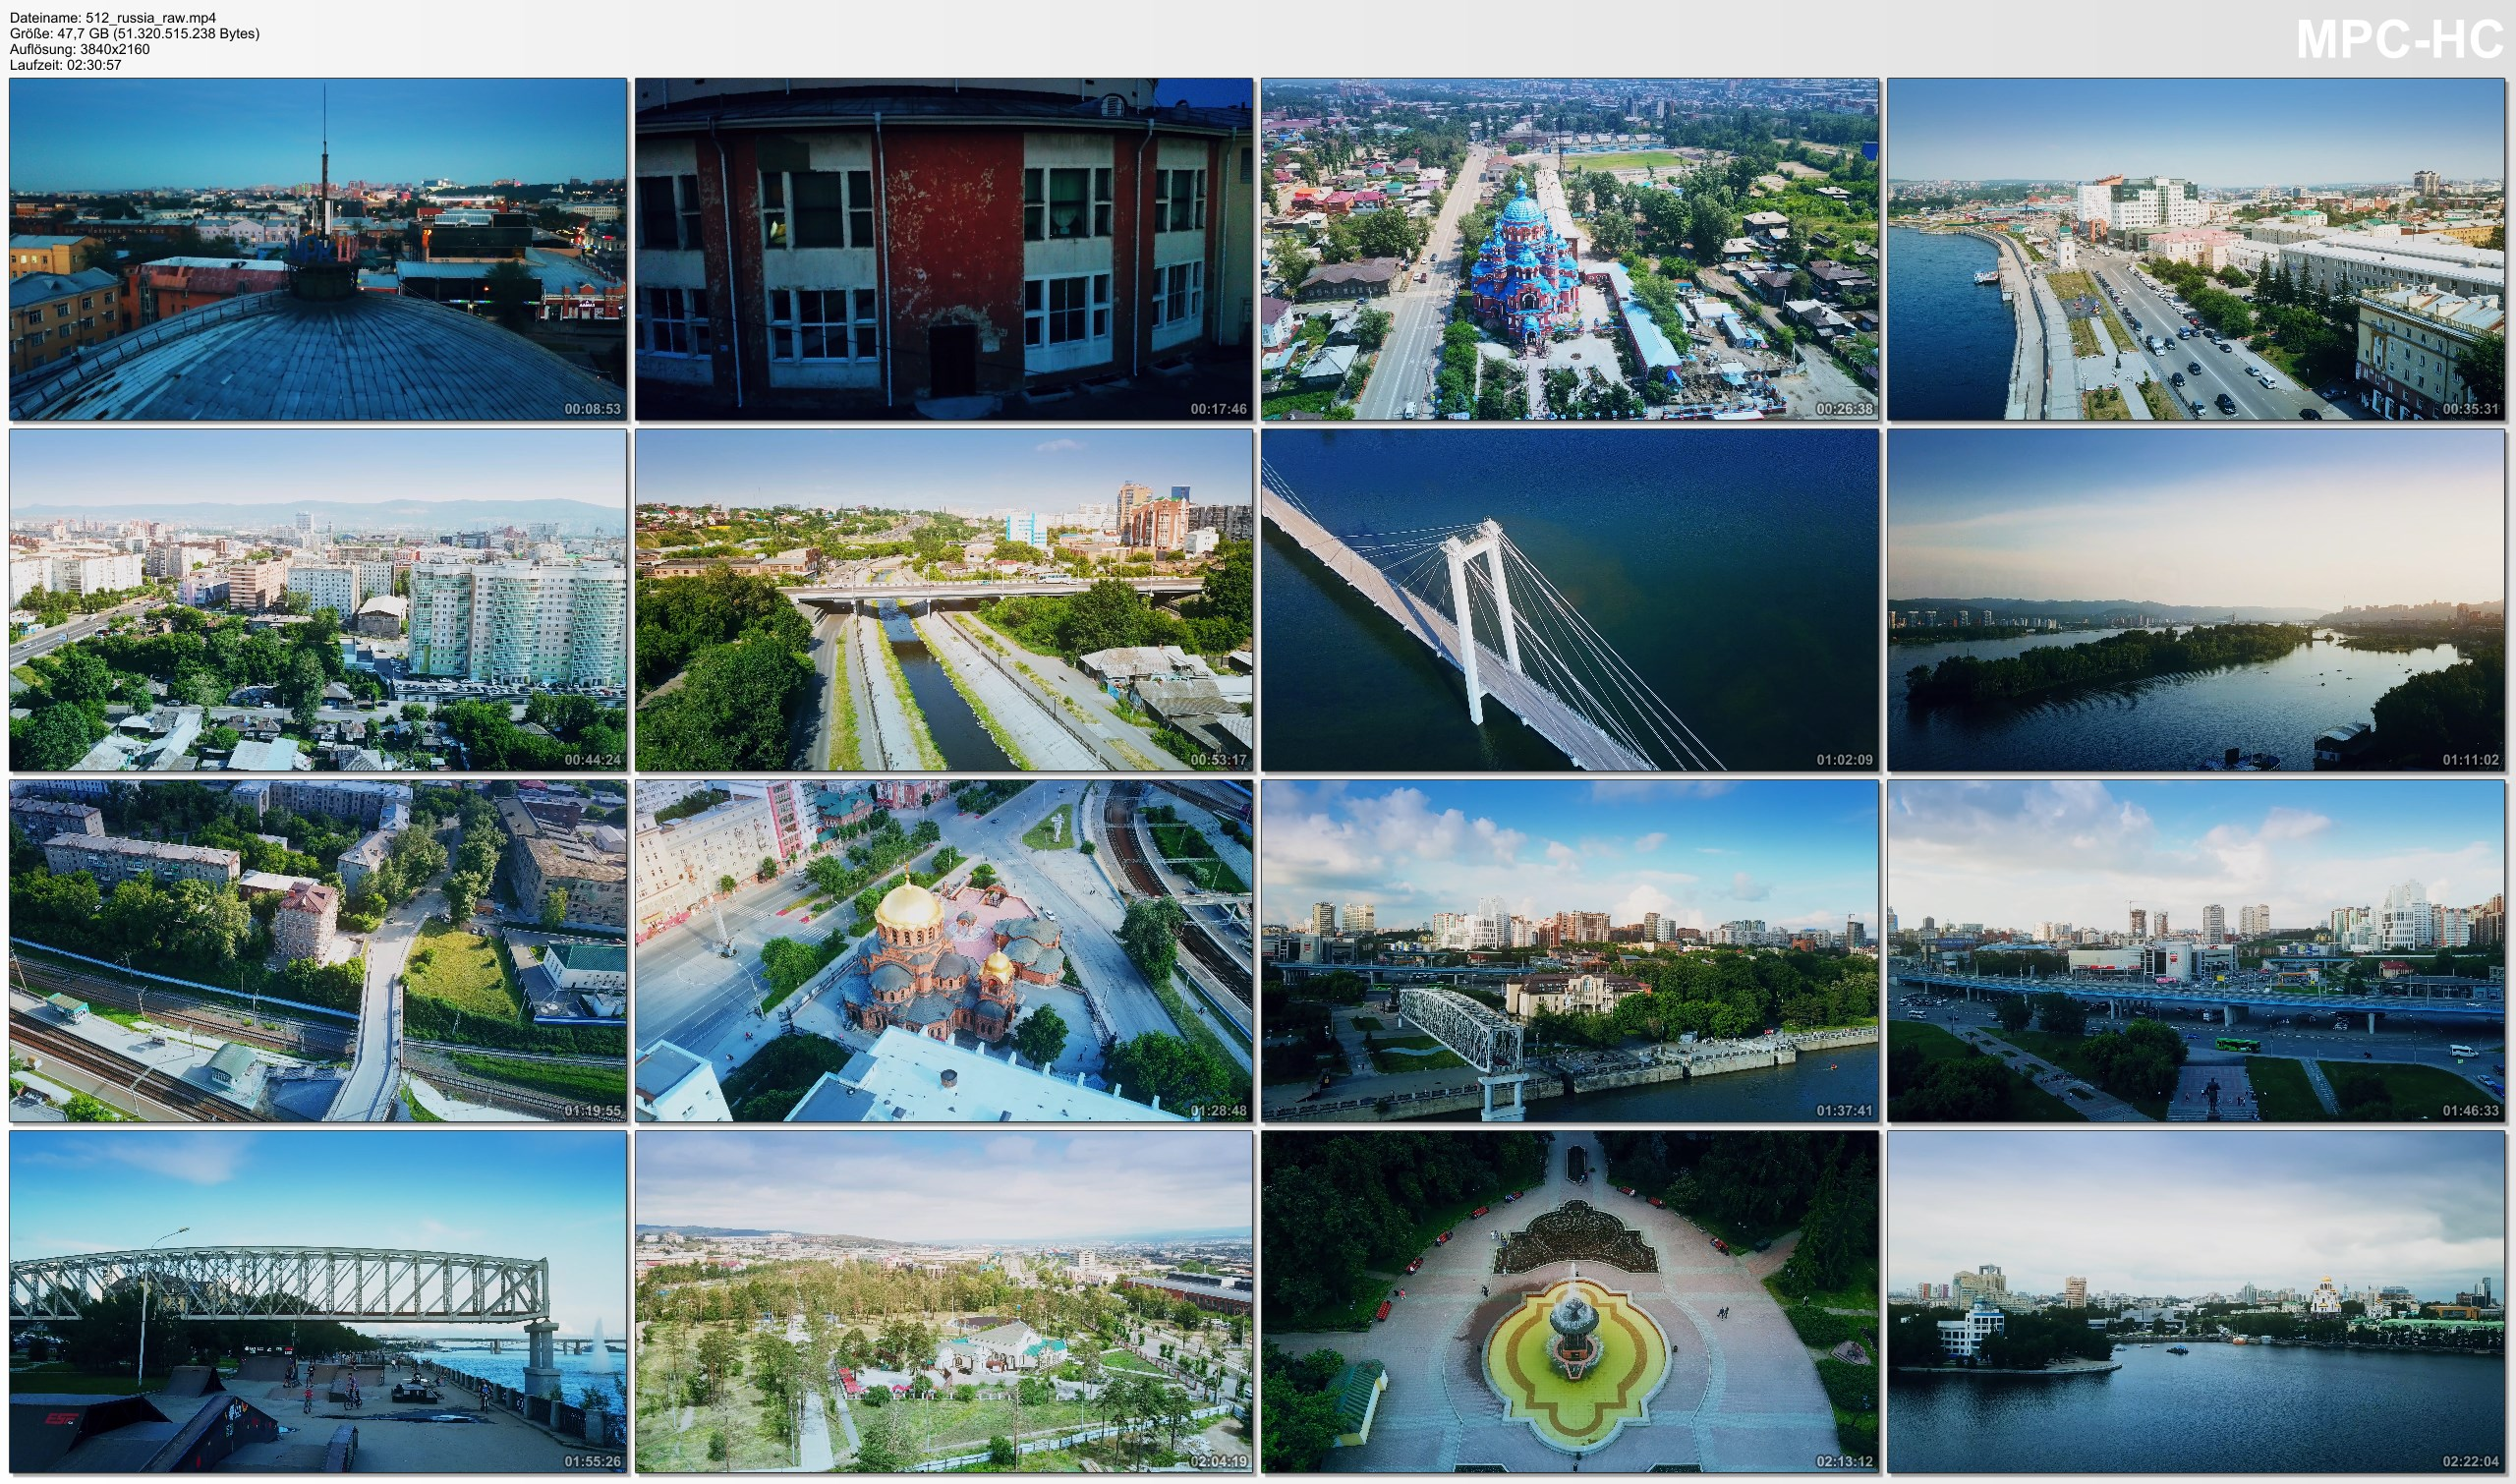 Drone Pictures from Video 【4K】Drone RAW Footage | This is RUSSIA 2020 | Novosibirsk | Sibiria and More | UltraHD Stock Video